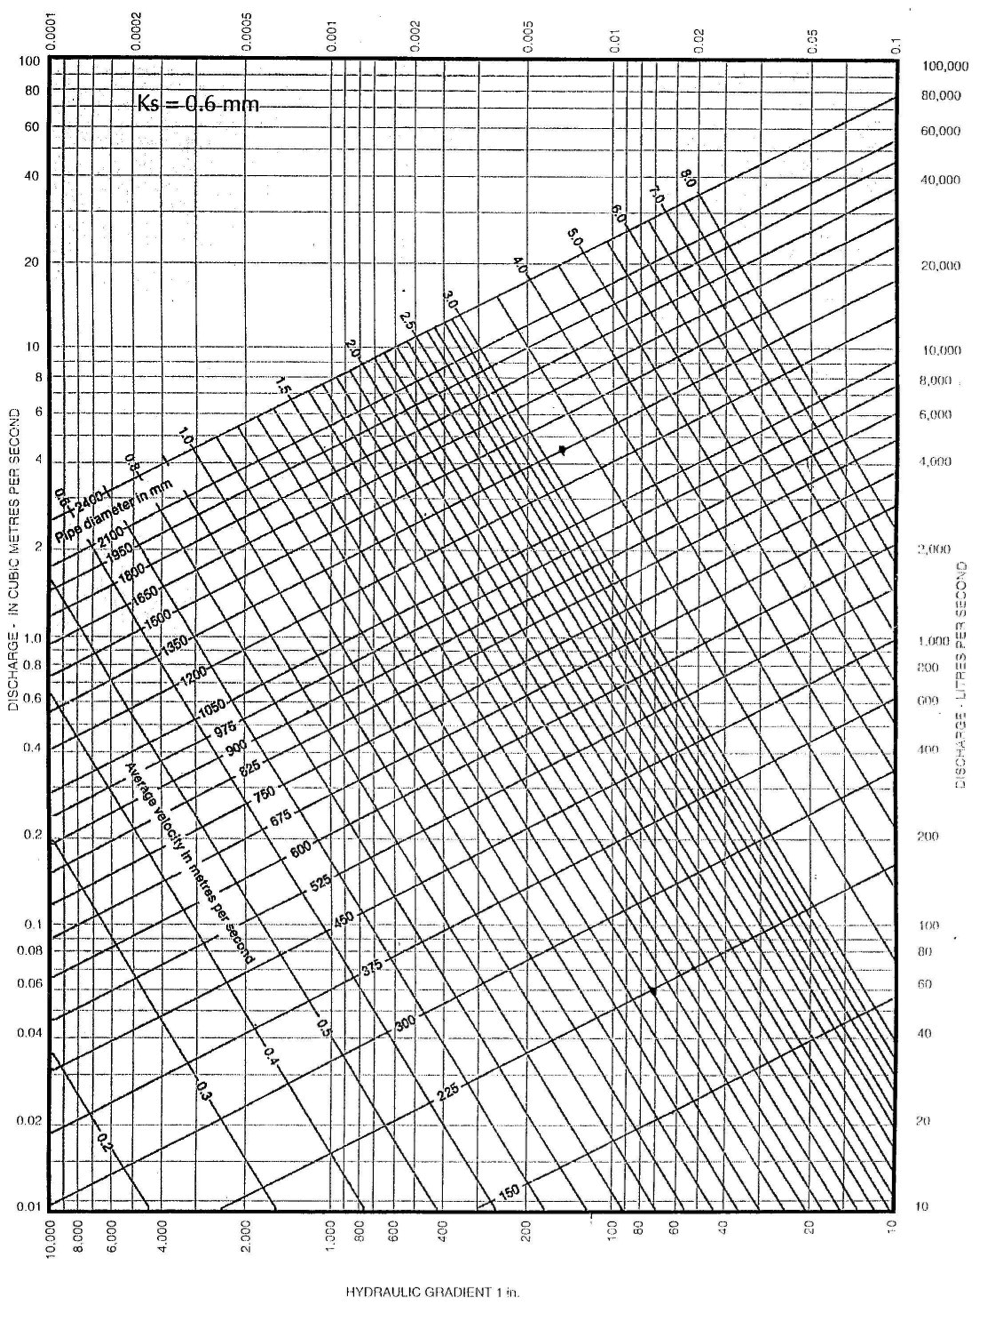 Hydraulic design condron concrete note this graph complies with bs 8005 part 1 1987 nvjuhfo Image collections